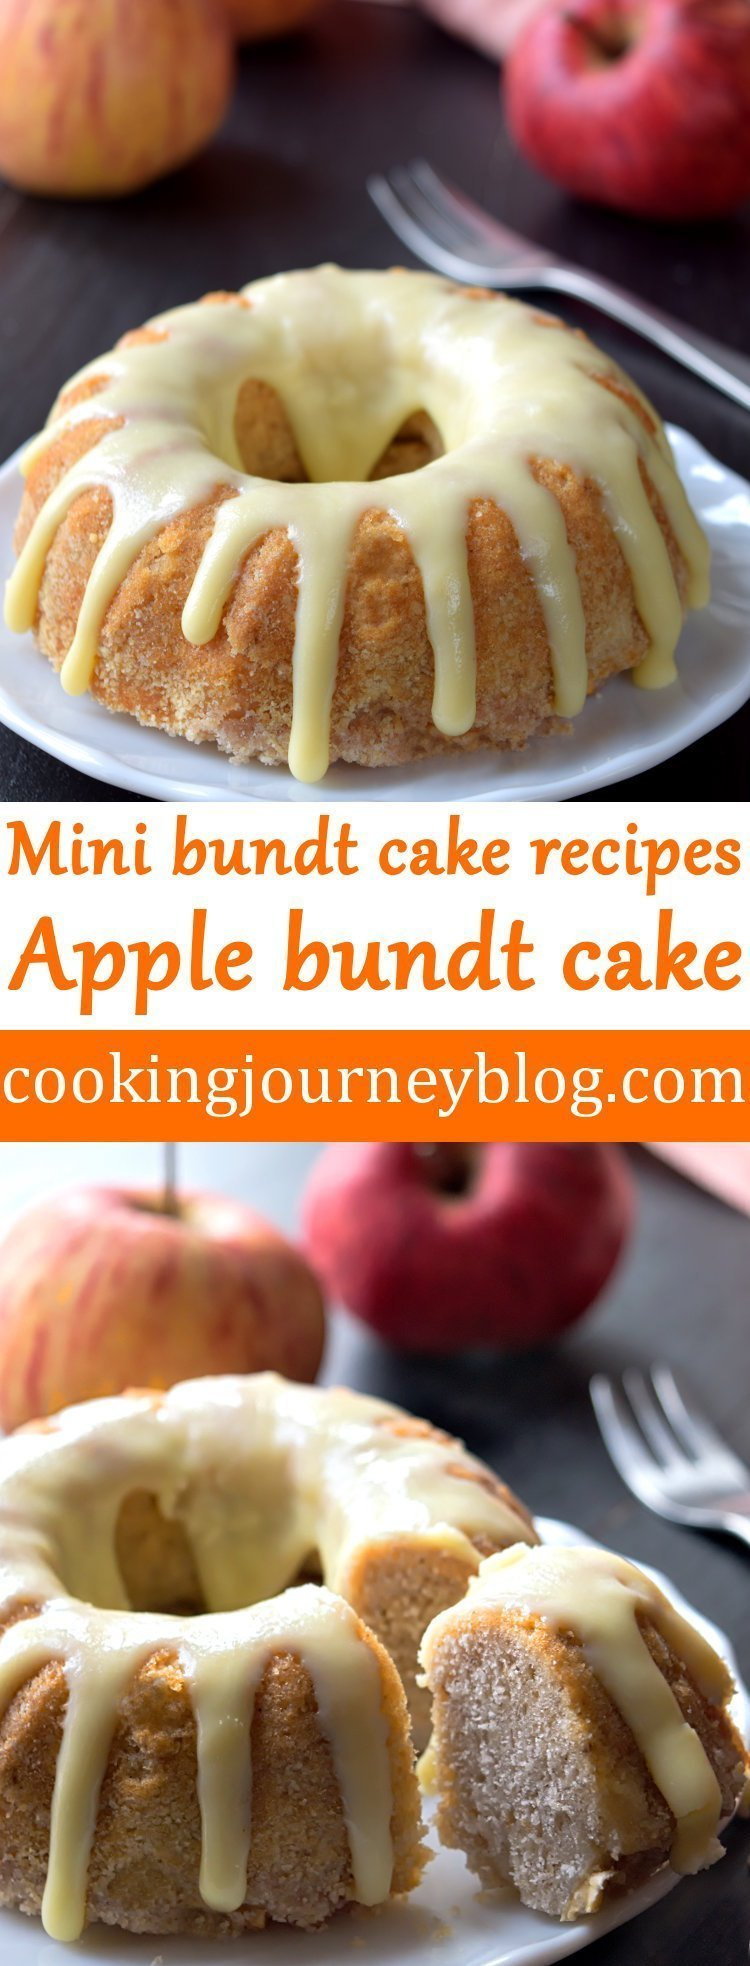 Apple bundt cake - Mini bundt cake recipes - Cooking Journey